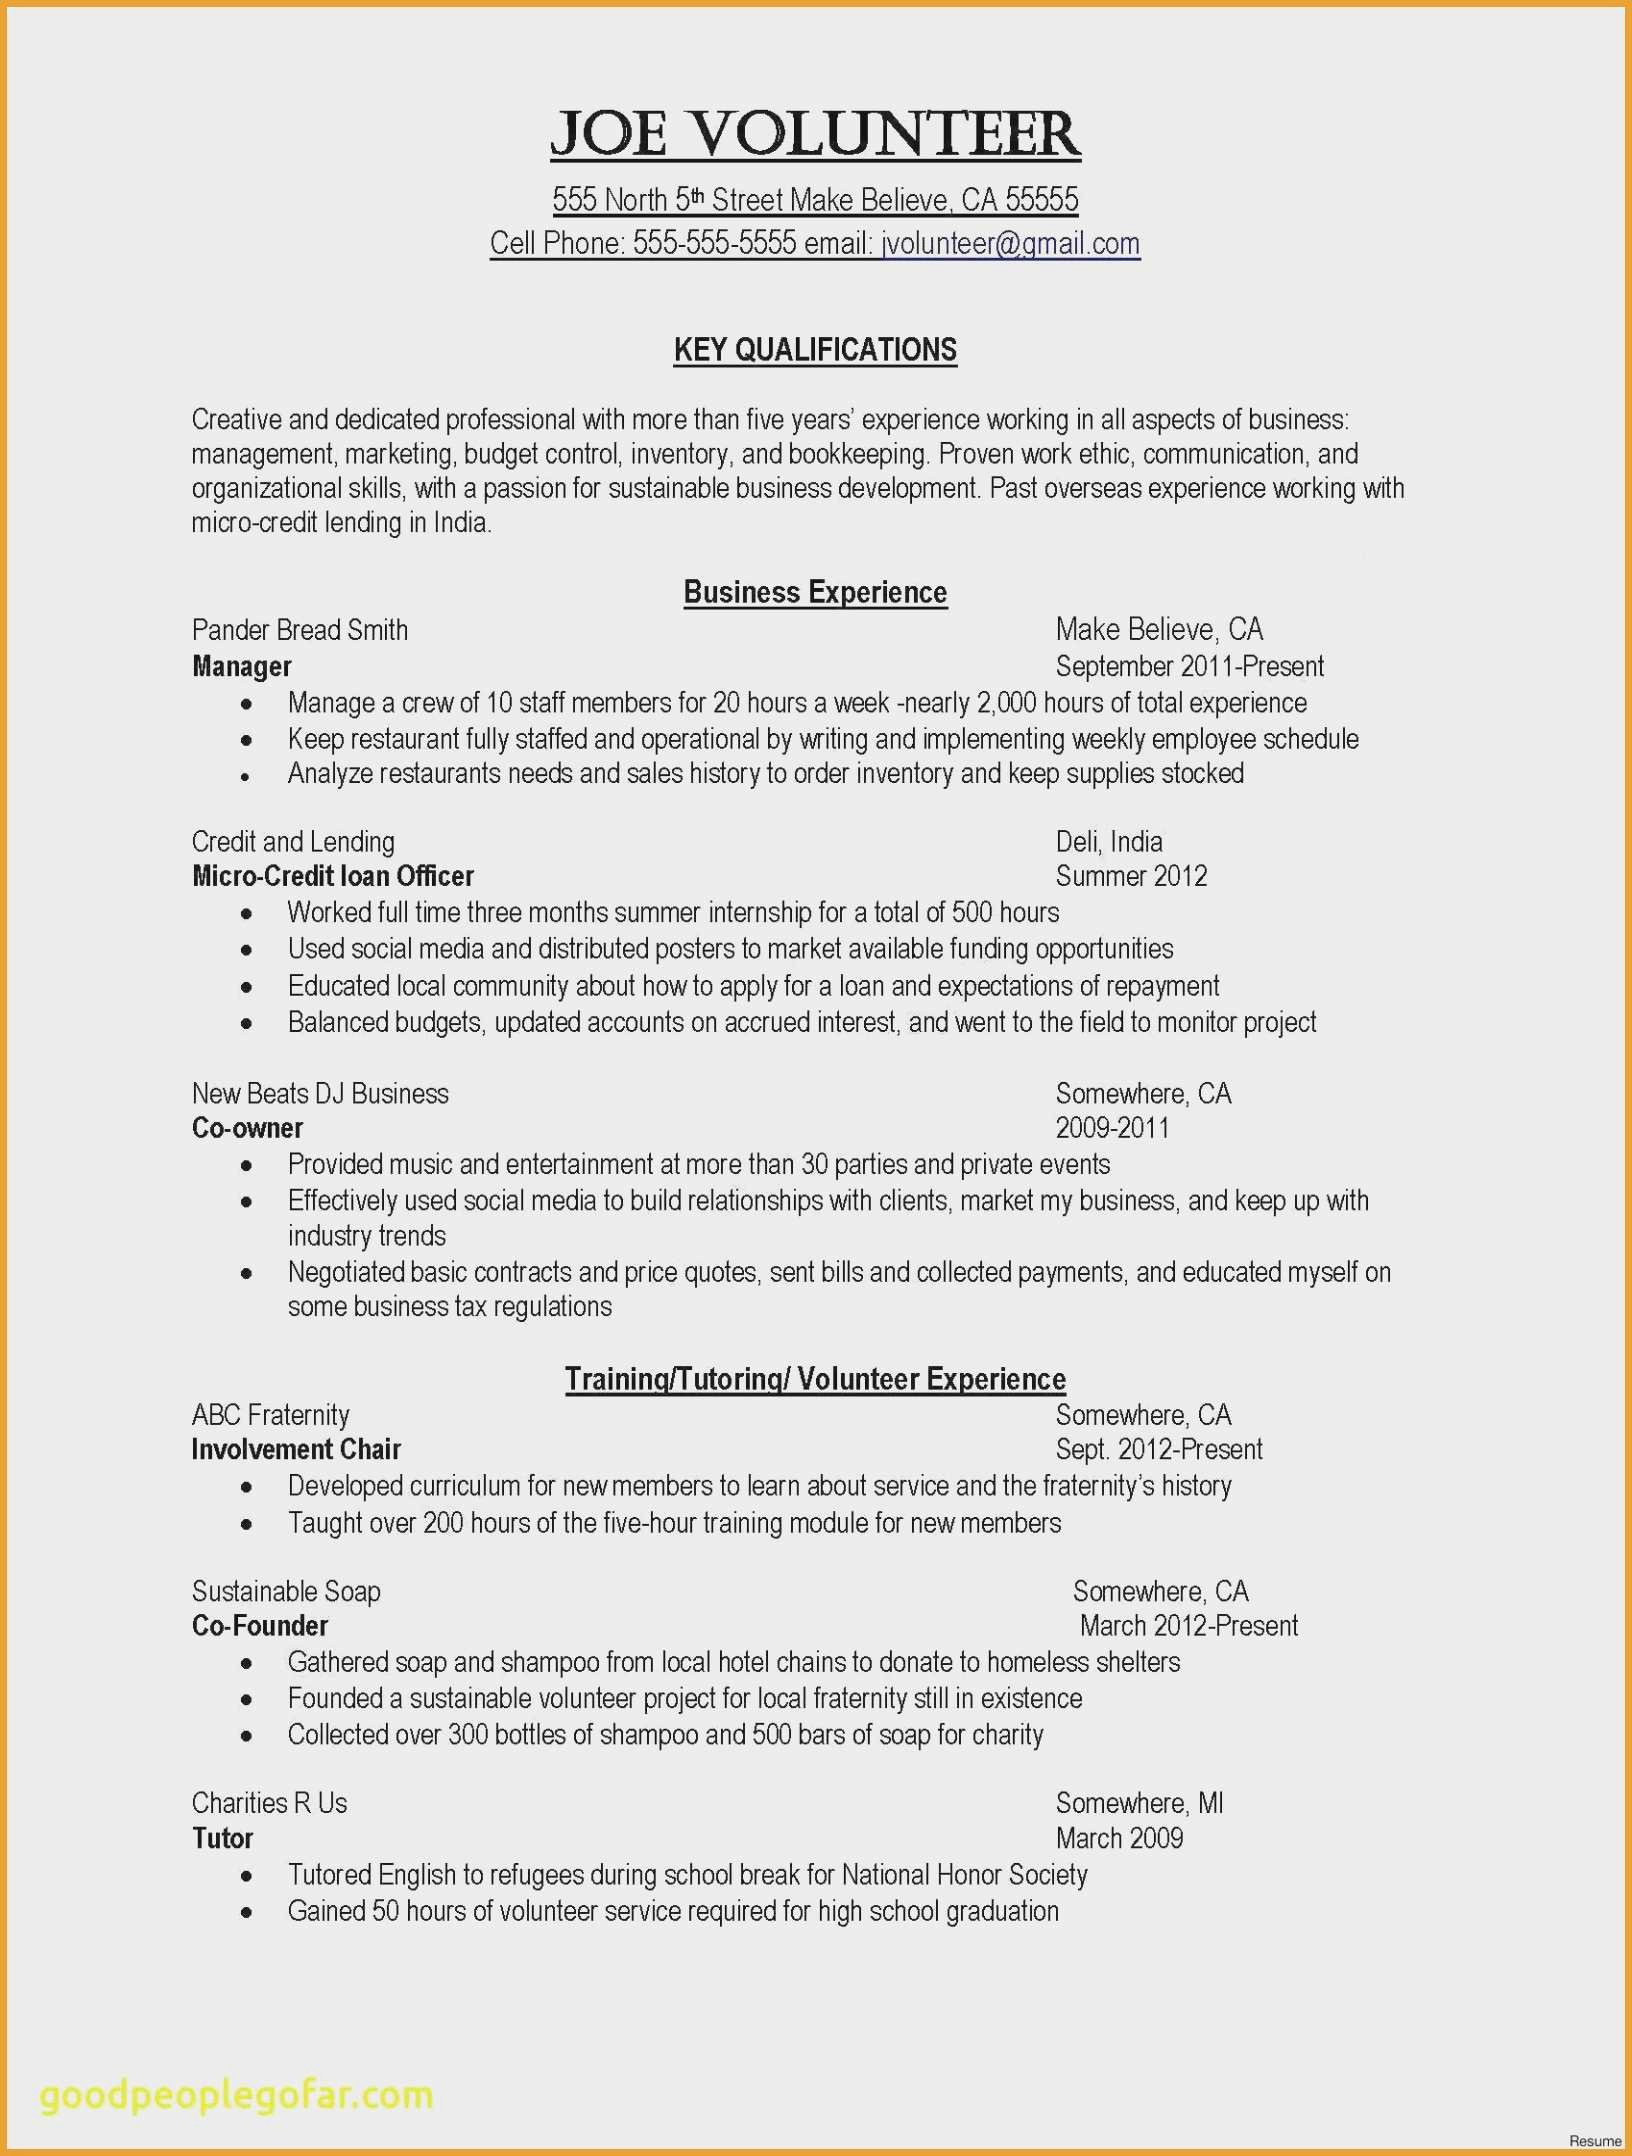 Service Industry Resume Sample - Resume Samples for Hospitality Industry Unique A Good Resume Example